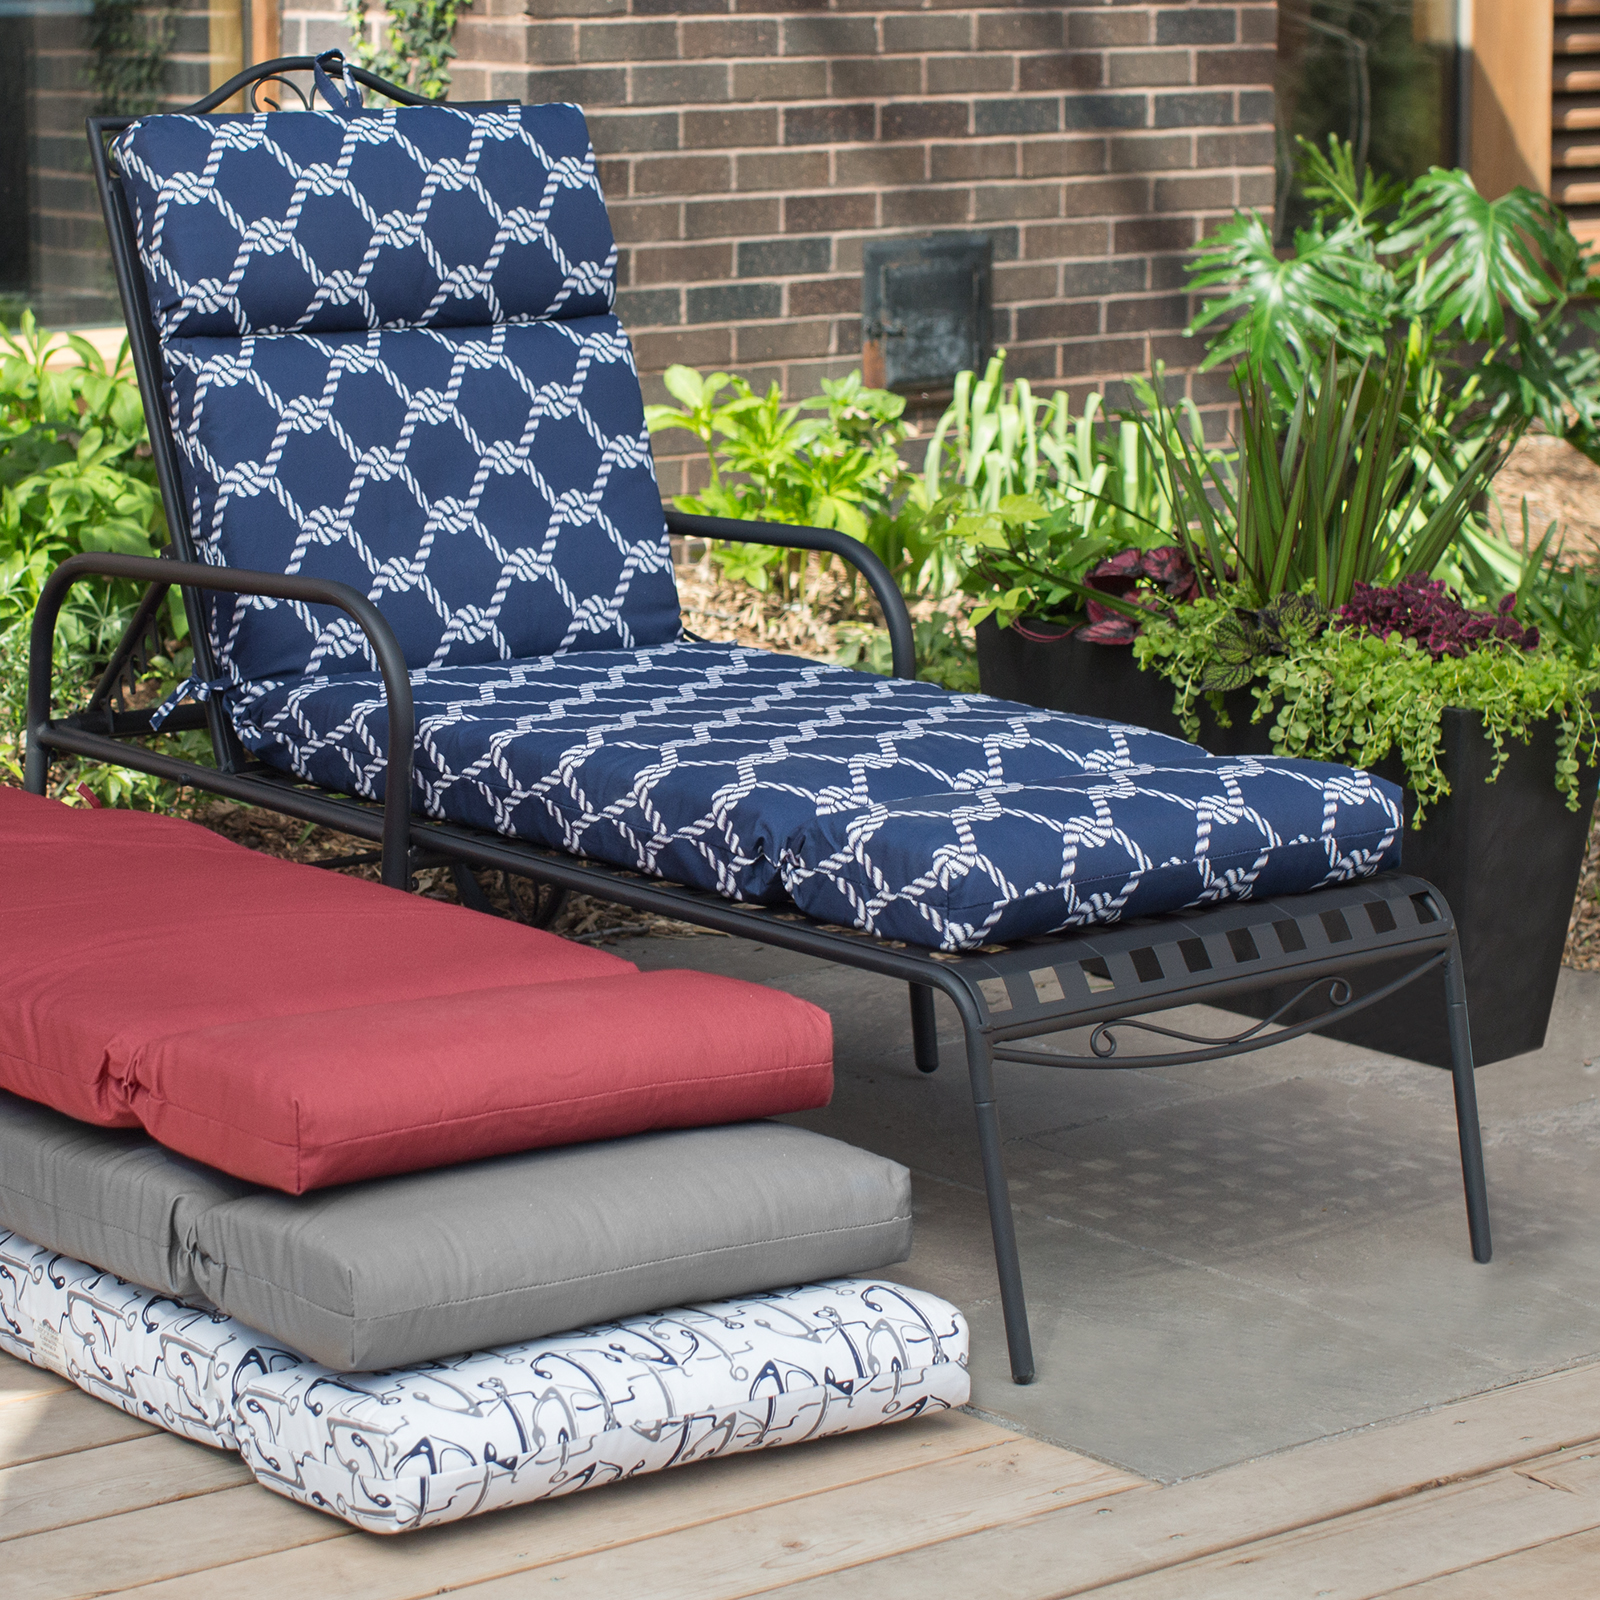 Exceptional Chaise Lounge Cushions Outdoor Cushions On Hayneedle   Chaise Lounge  Cushions Outdoor Cushions For Sale